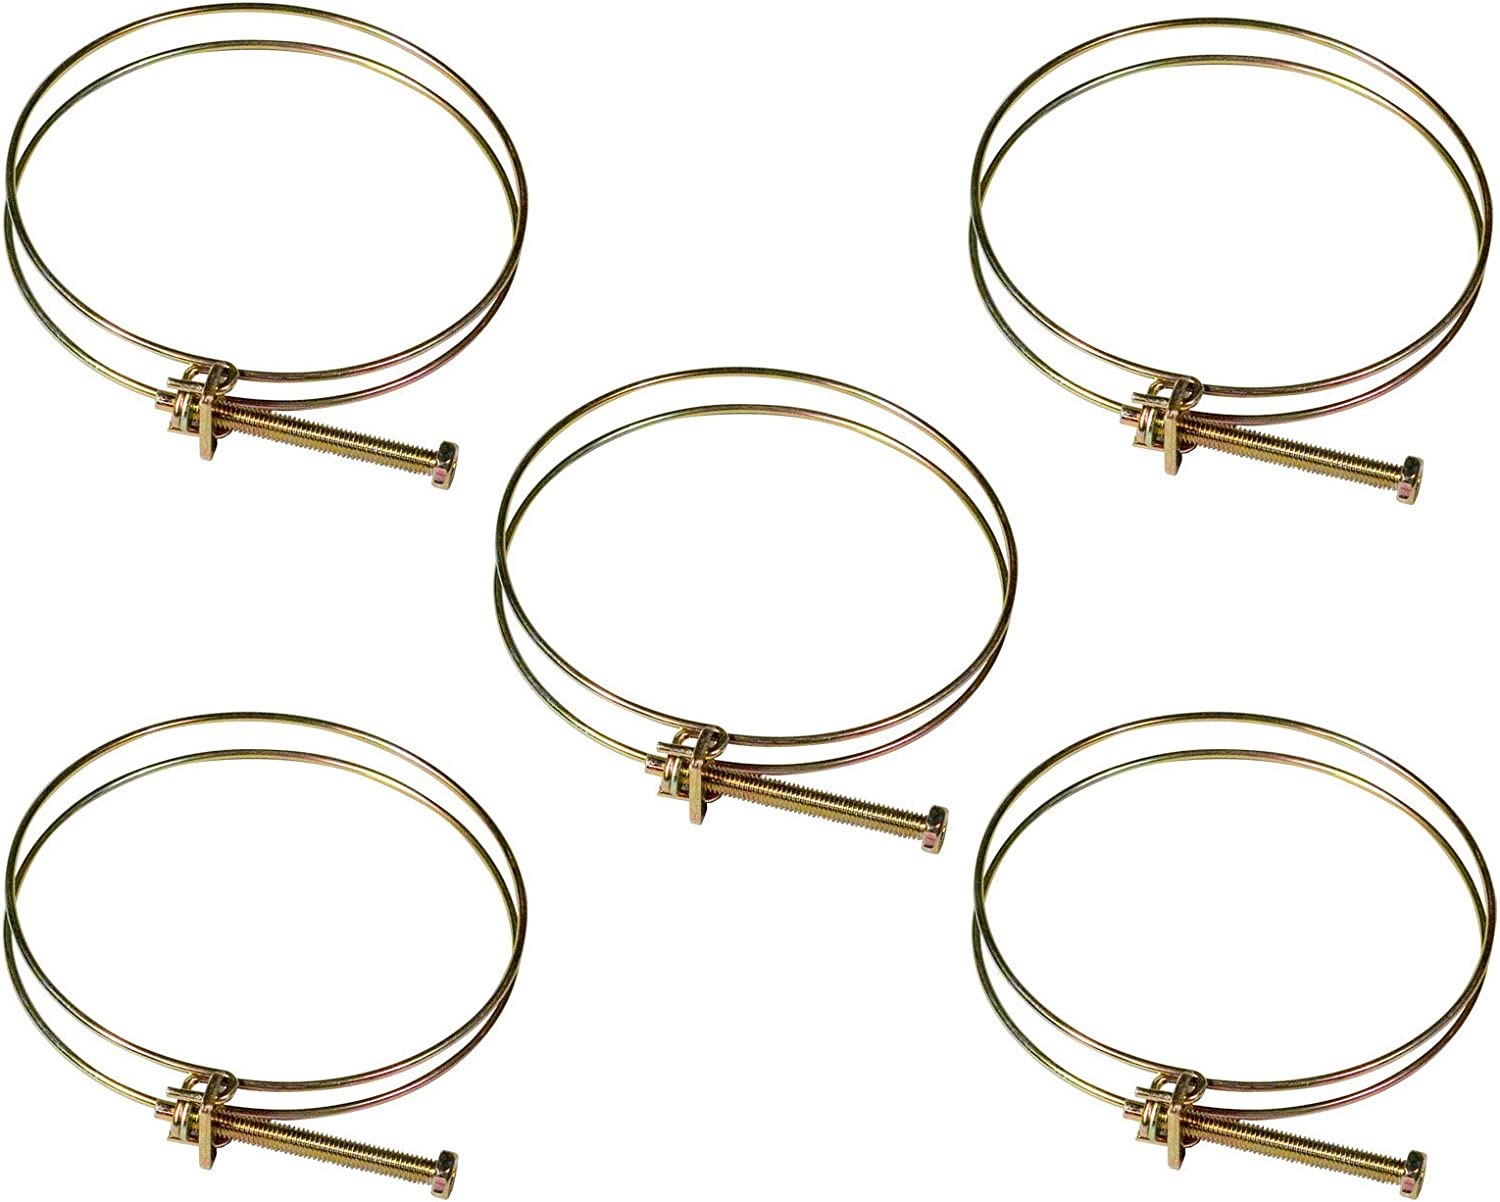 POWERTEC 70197 2-1/2-Inch Double Wire Hose Clamp | 5-Pack